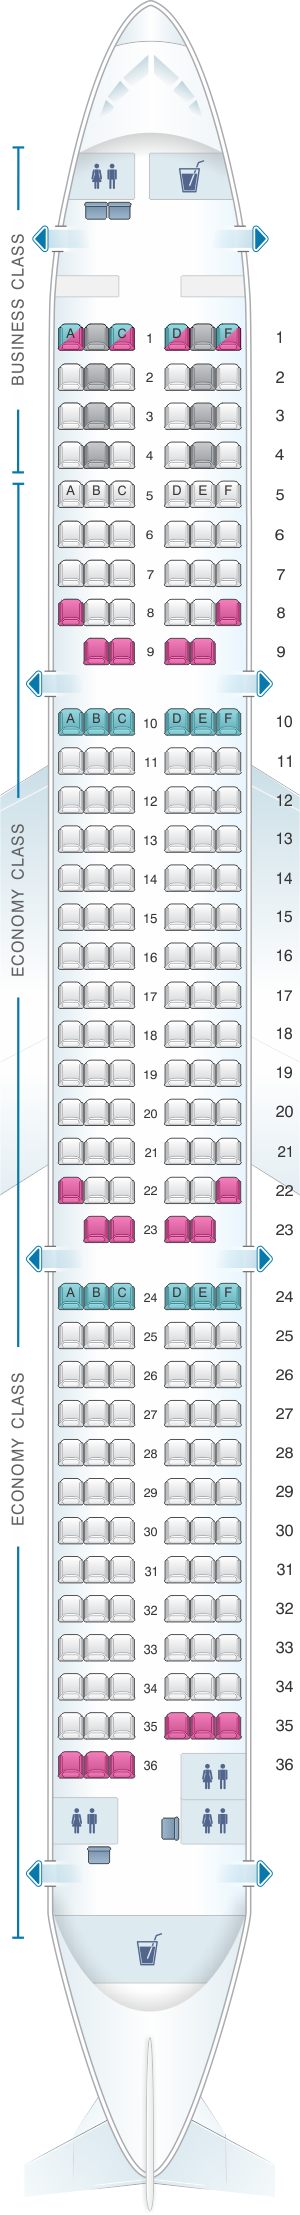 Seat map for Finnair Airbus A321 201PAX